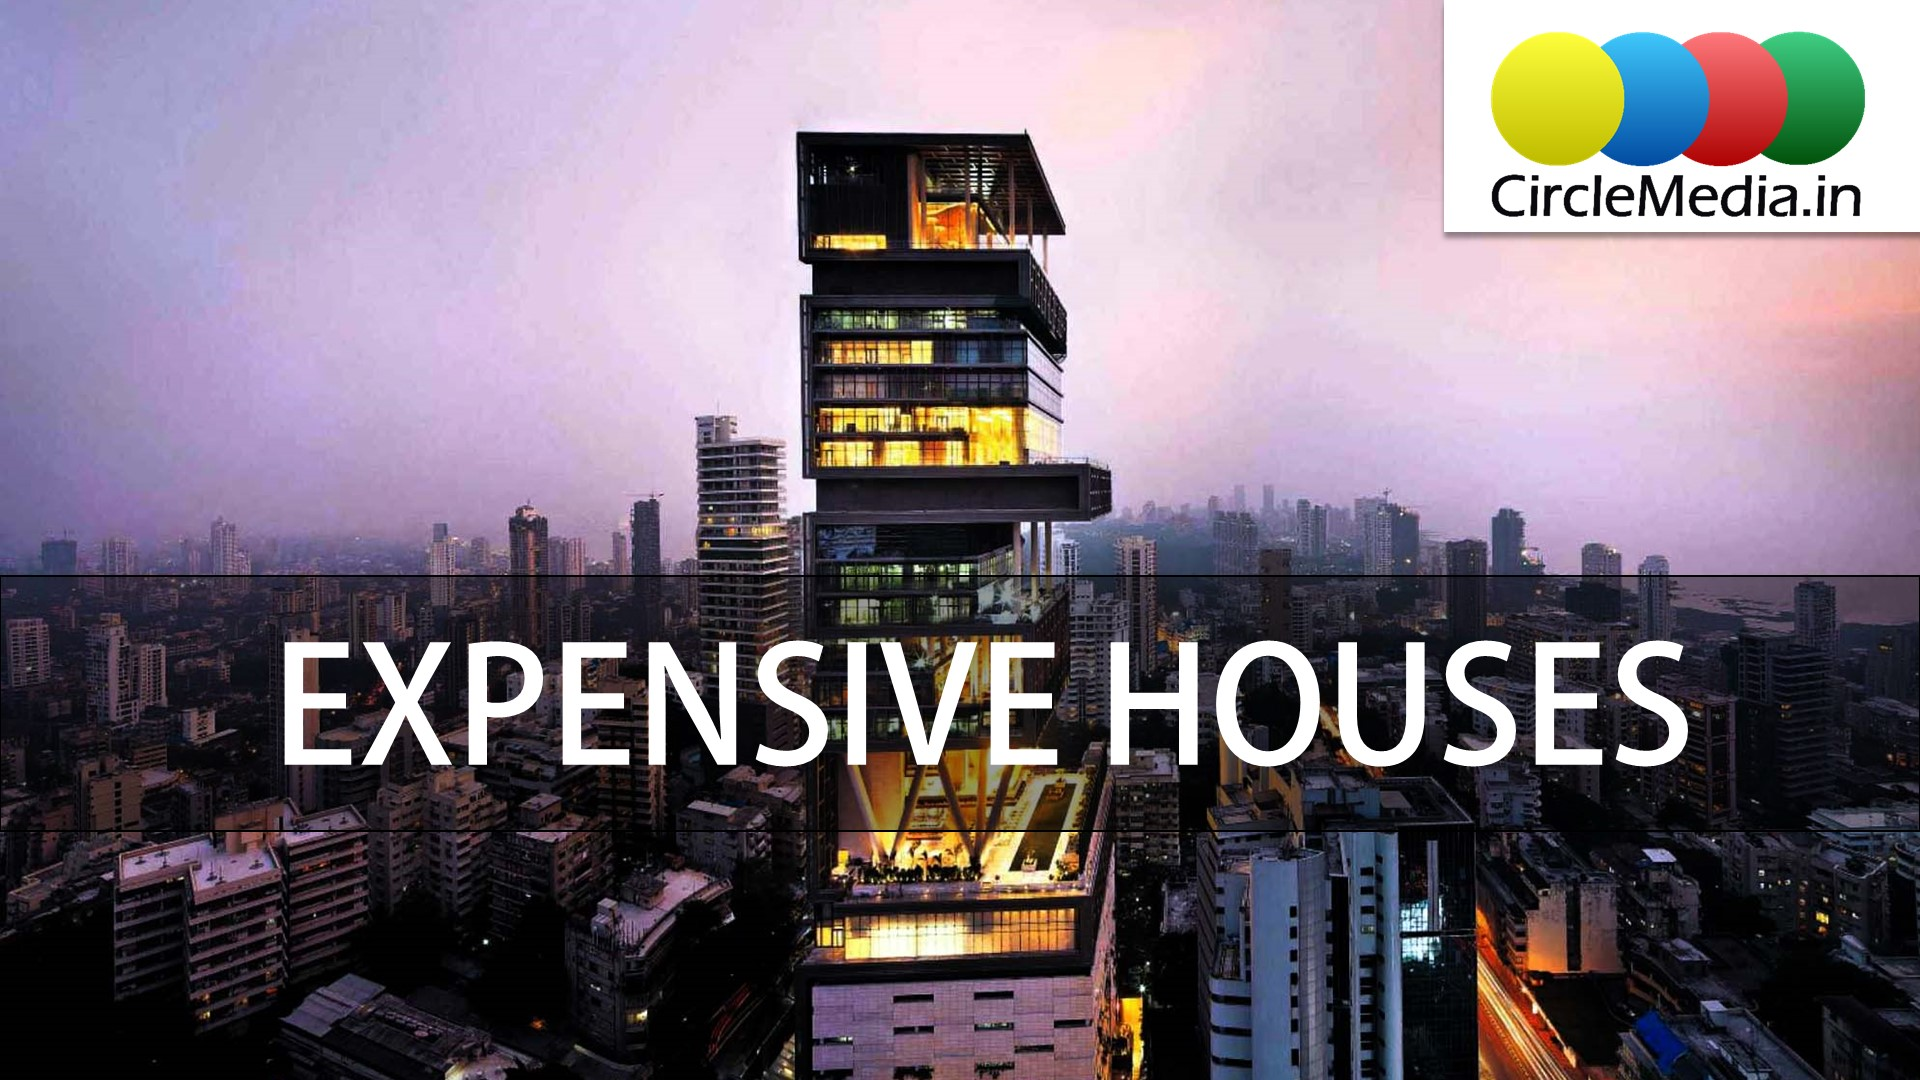 The 15 Most Expensive Houses In The World Rich People S Houses In